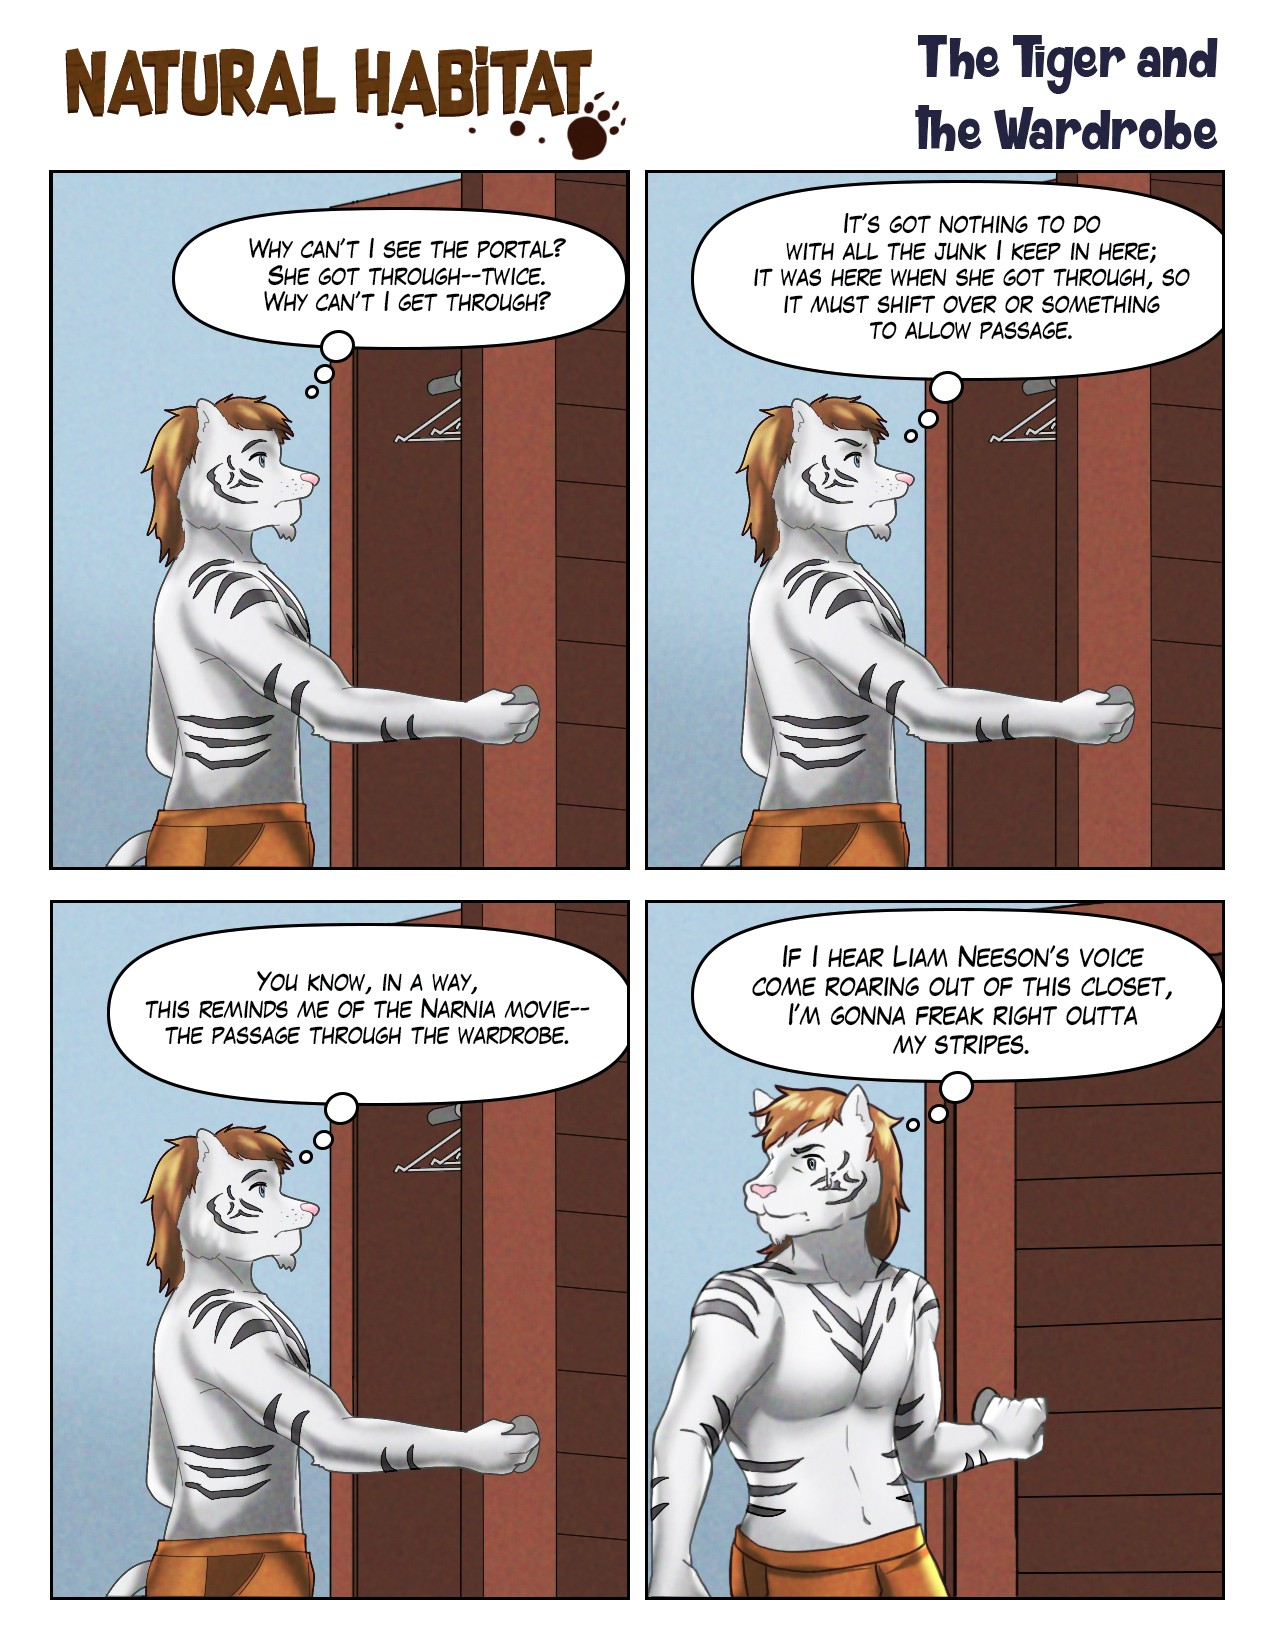 The Tiger and the Wardrobe